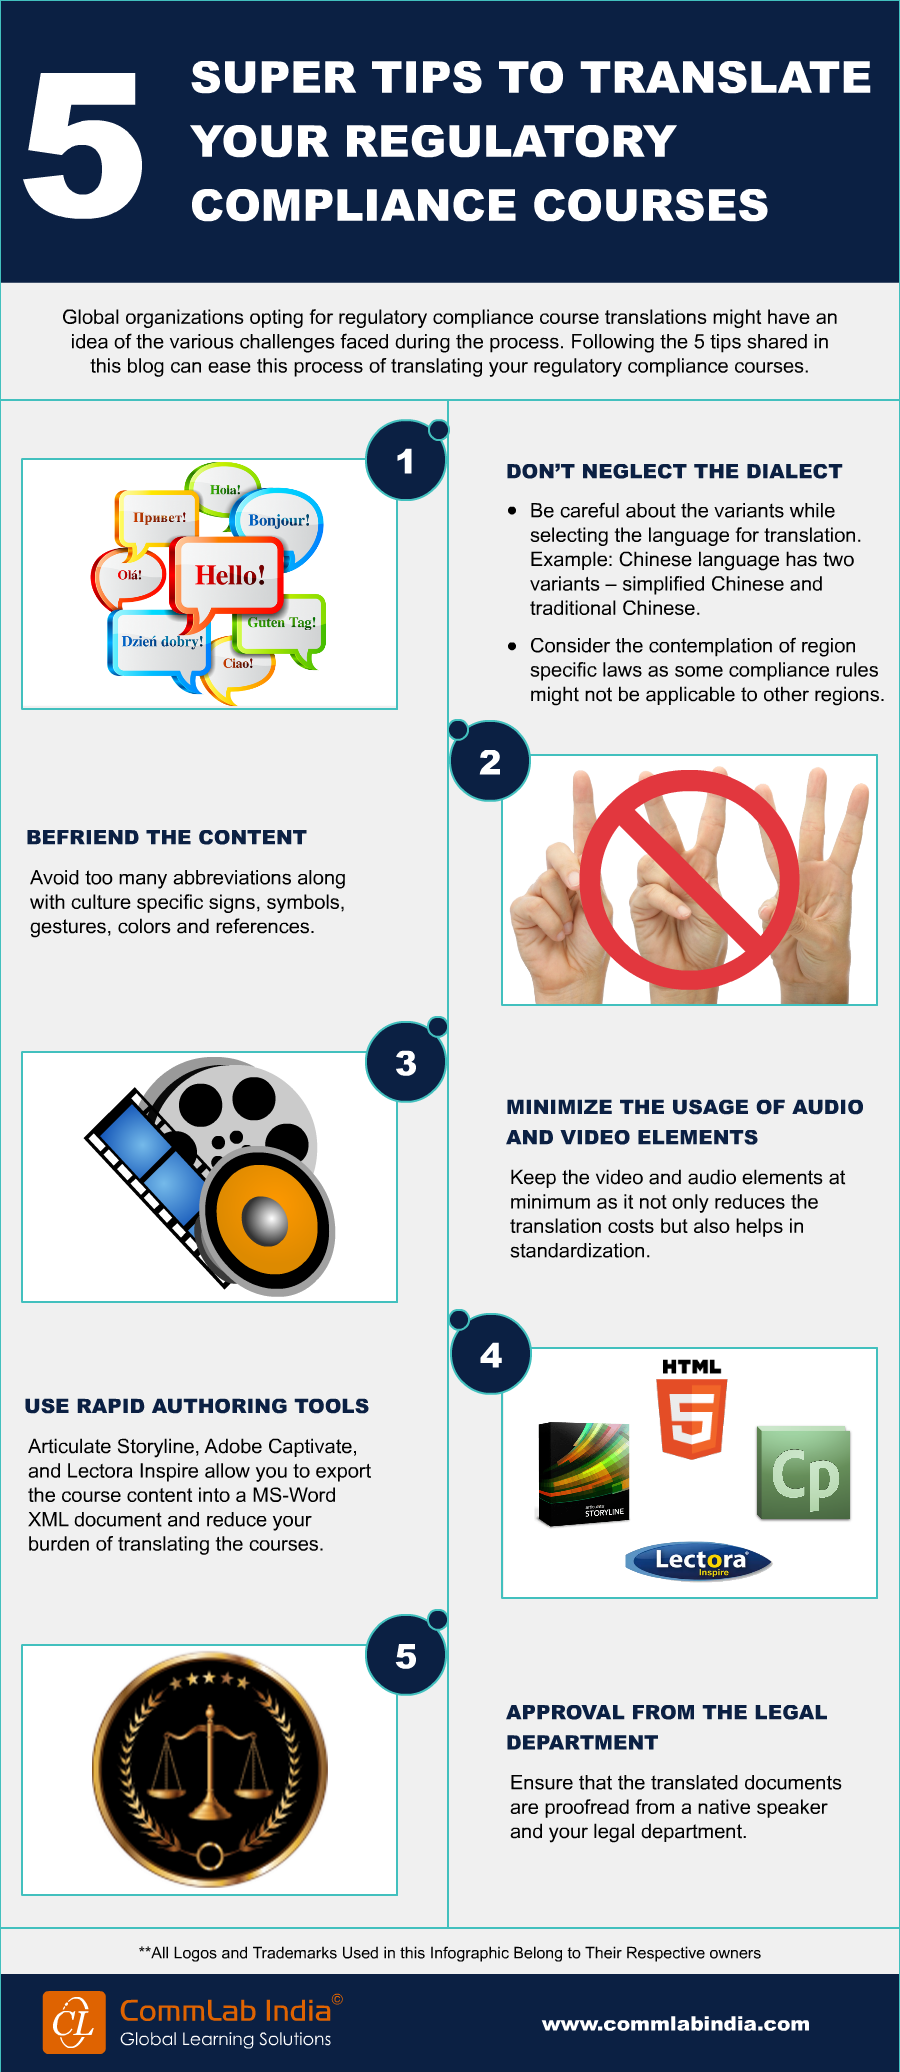 5 Super Tips To Translate Your Regulatory Compliance Course [Infographic]